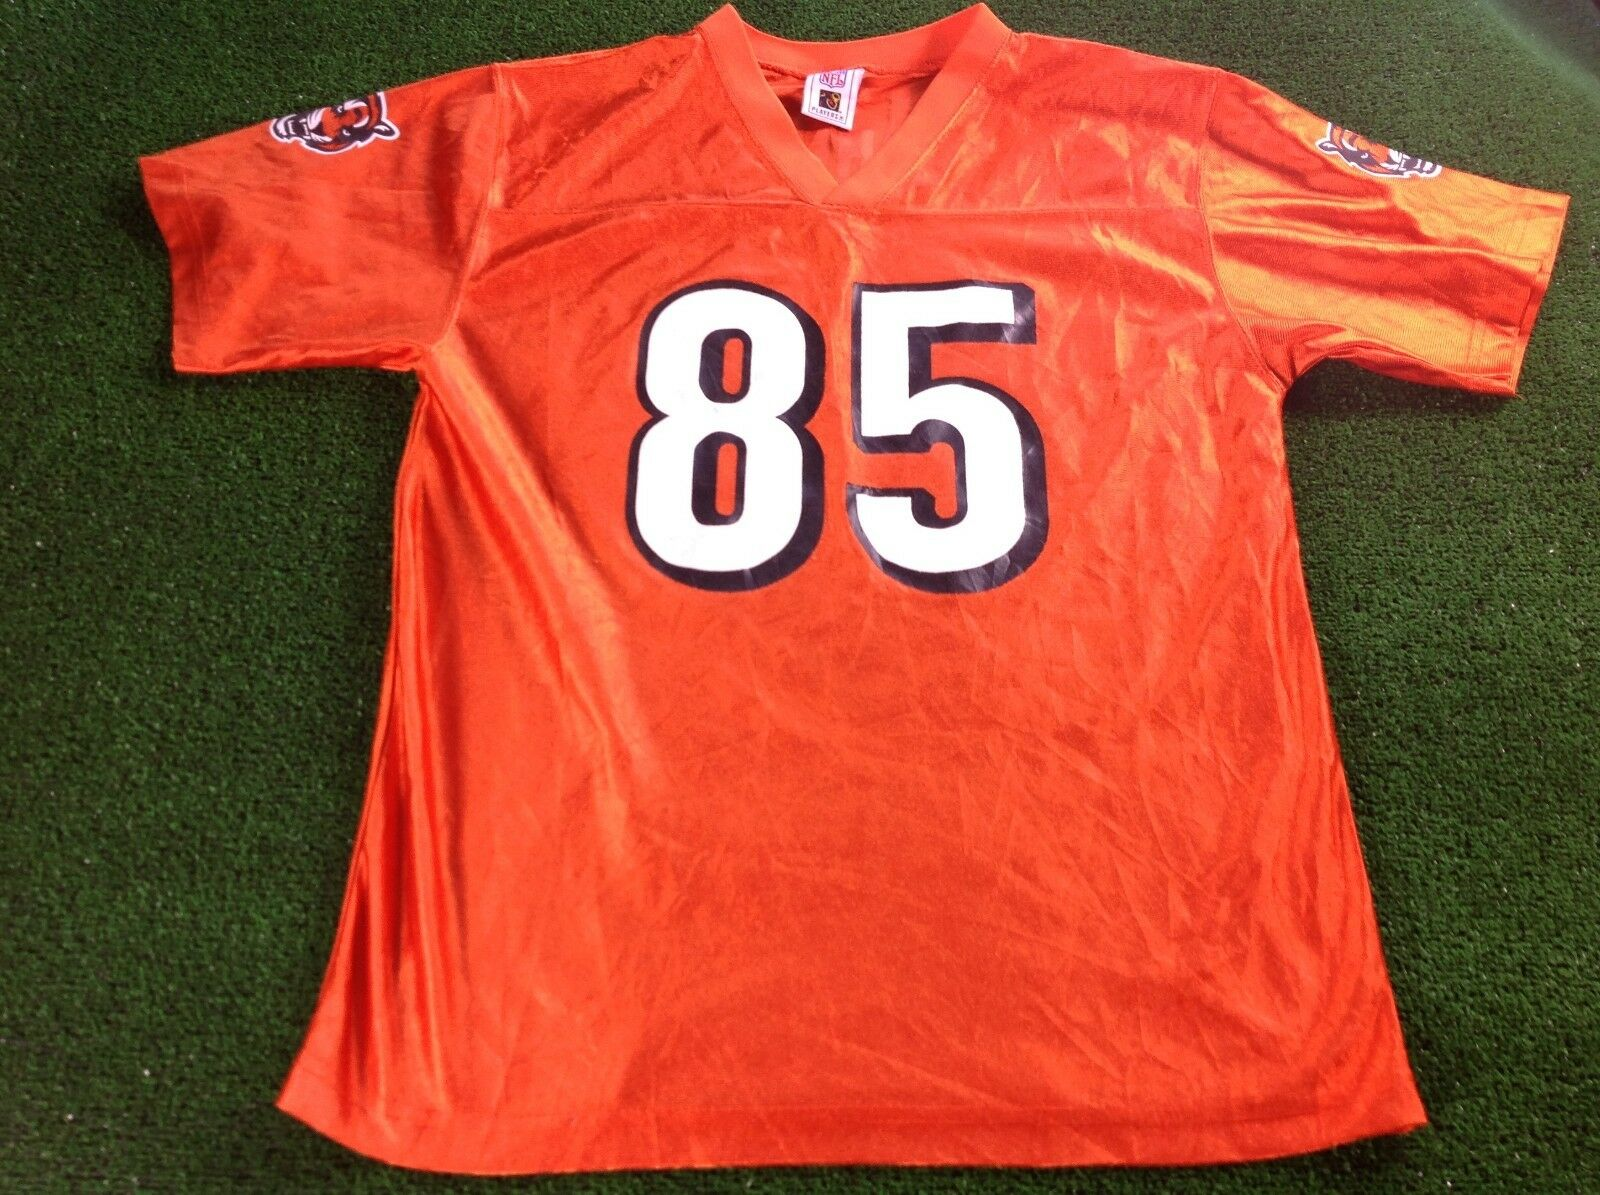 Vtg 80s 90s nfl players cincinatti bengals NFL football shirt jersey men